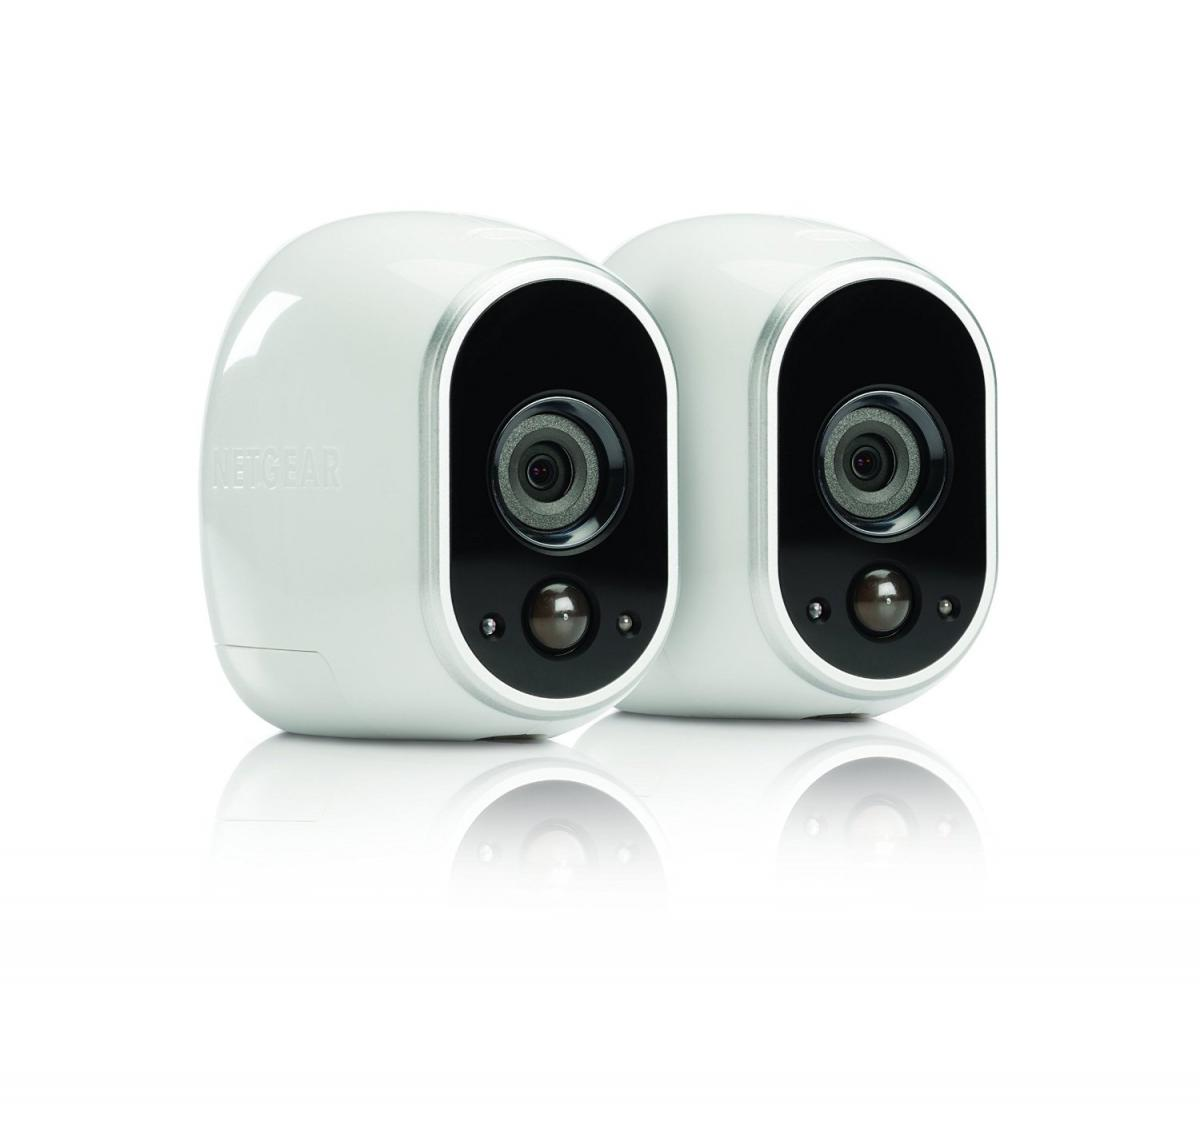 Review: Netgear\'s new Arlo security camera system is a winner